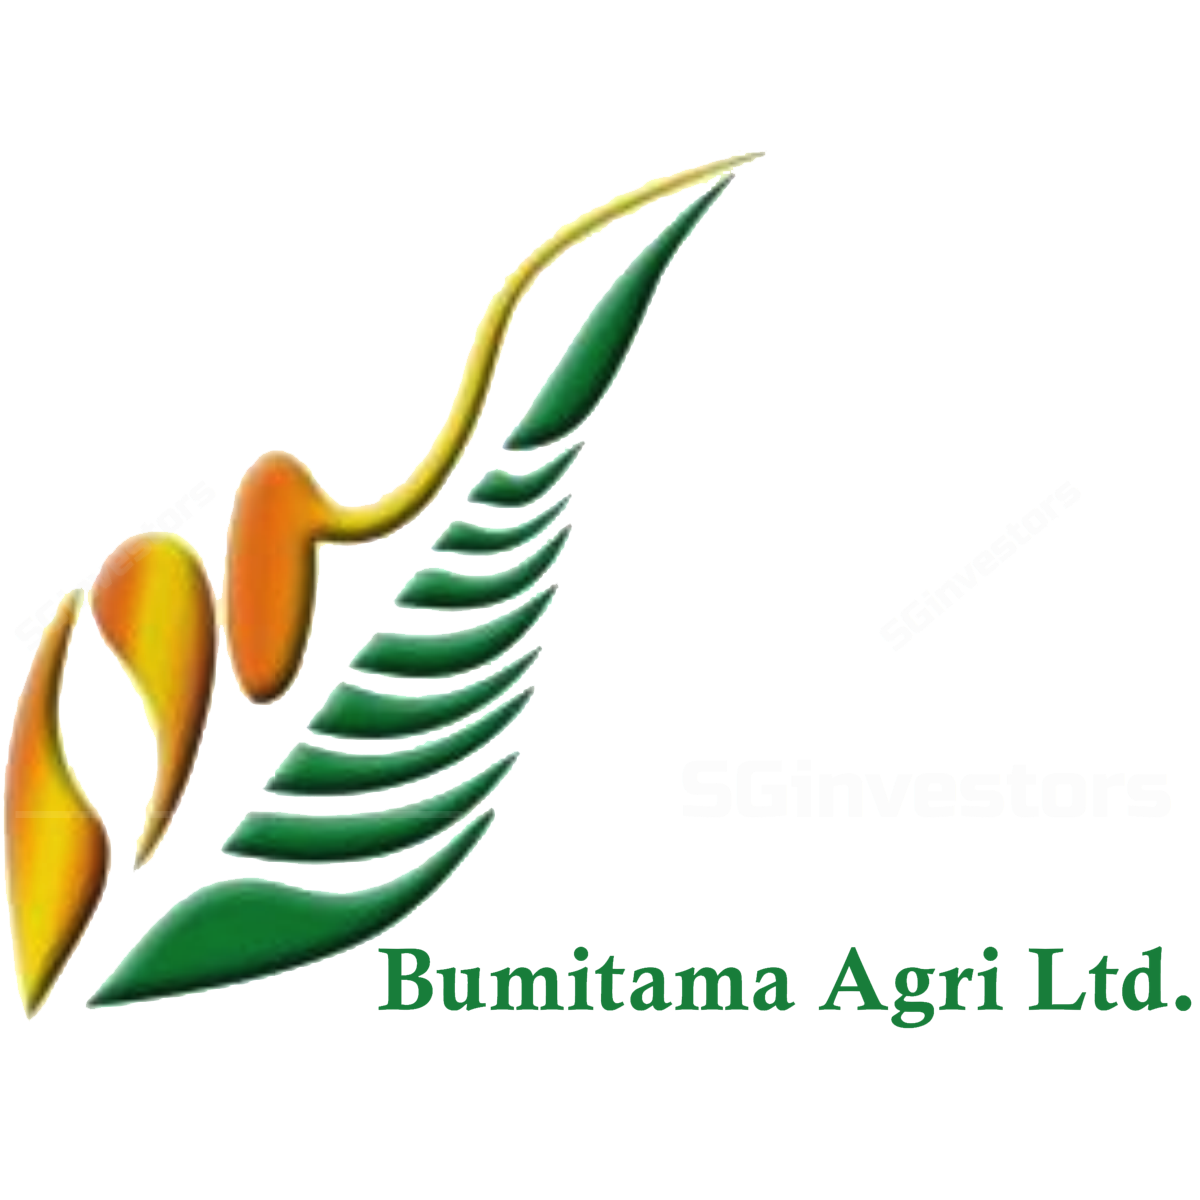 Bumitama Agri (BAL SP) - UOB Kay Hian 2017-01-23: 4Q16 FFB Production Improves qoq And yoy